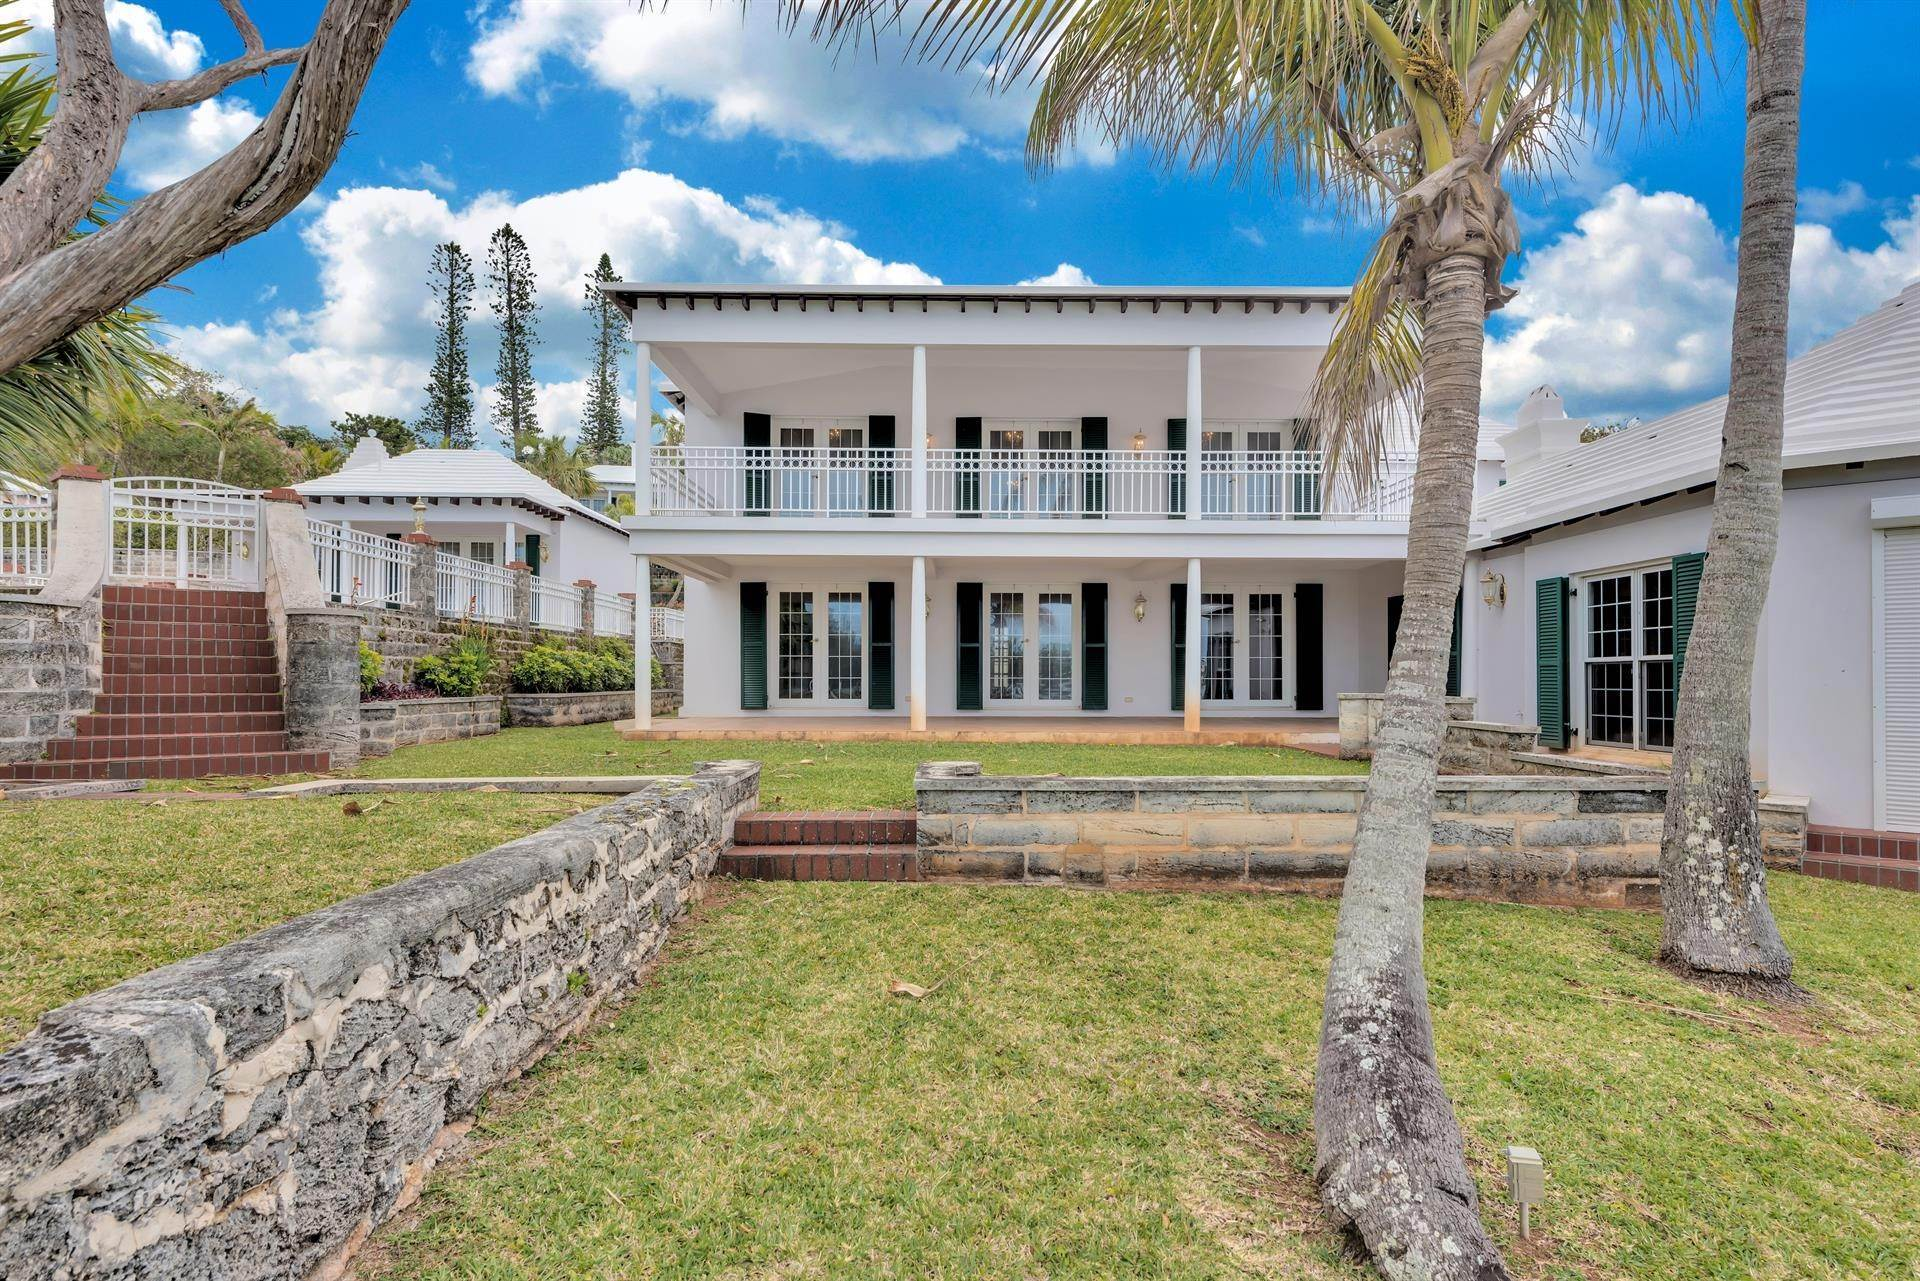 6. Estate at Hampton Head Manor 9 Peppercorn Lane, Southampton Parish, Bermuda SN04 Bermuda